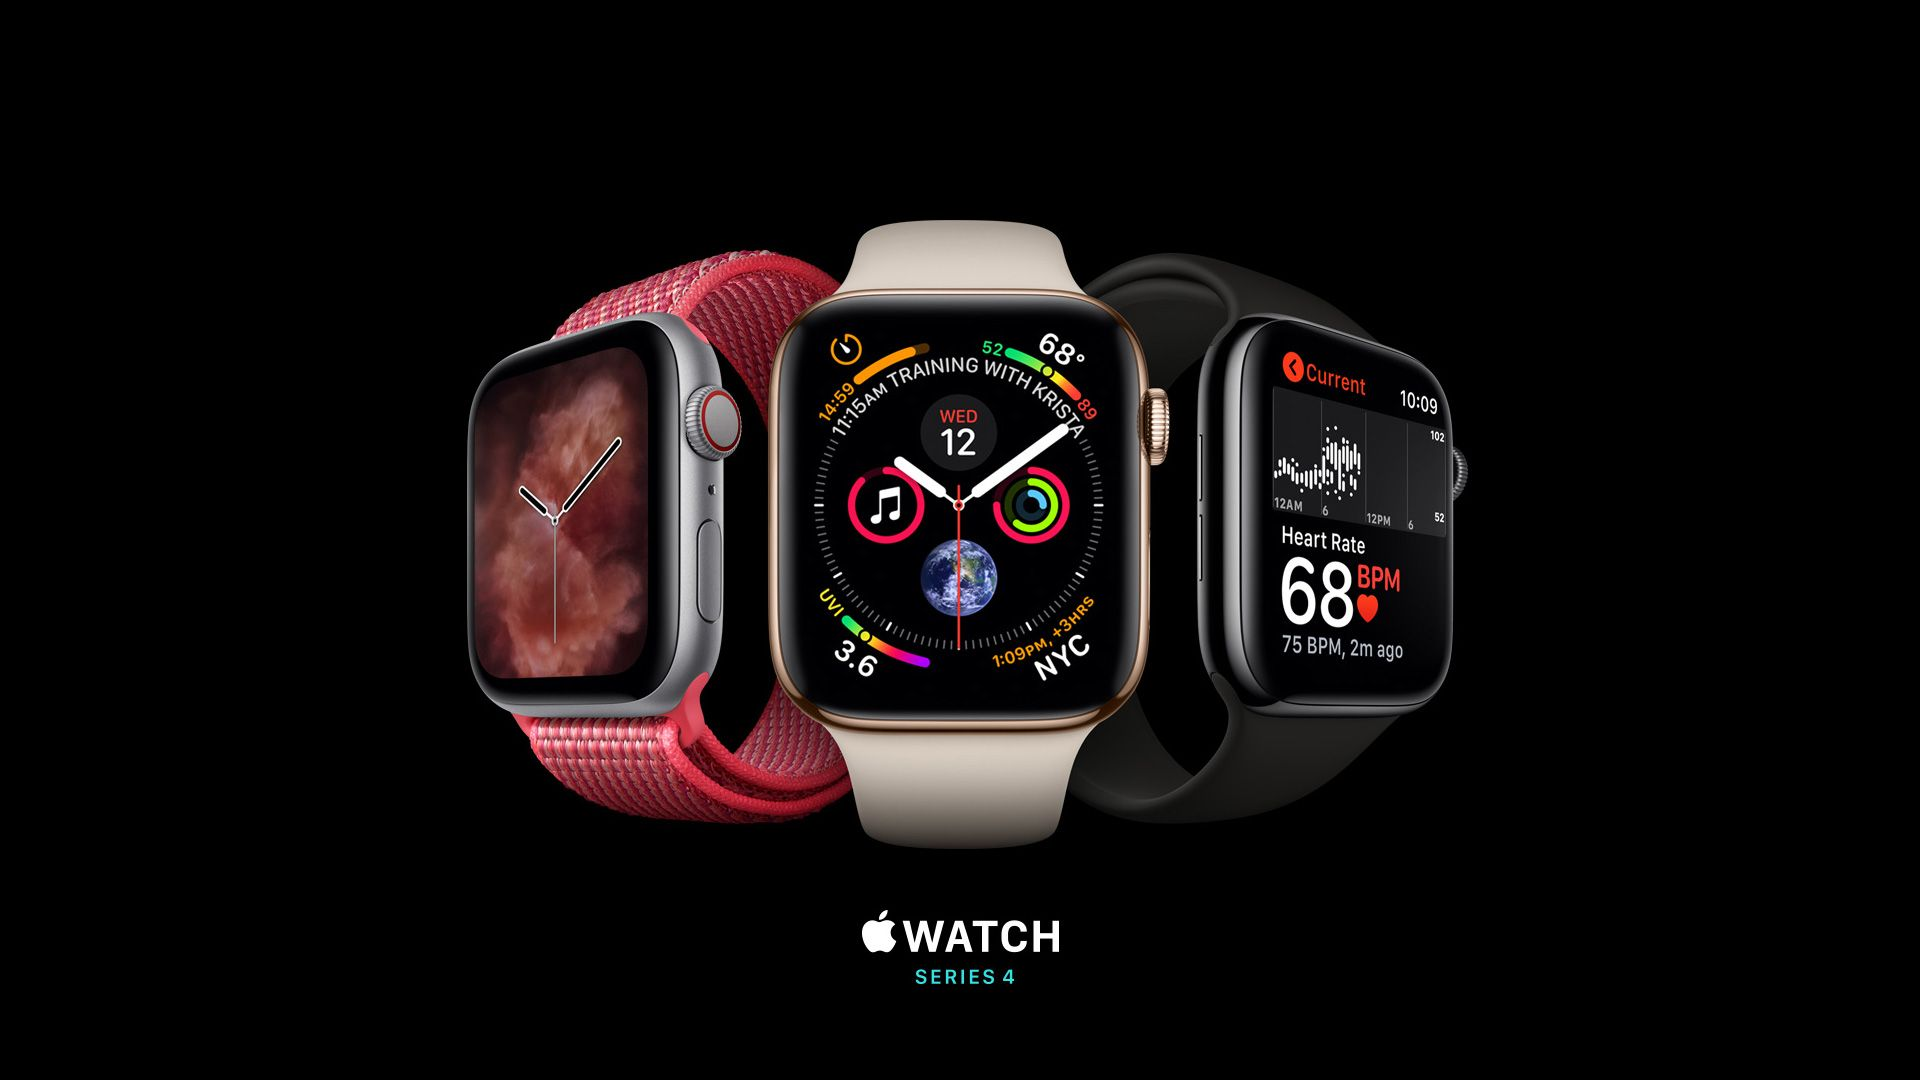 Apple Watch Series 4, silver, gold, black, Apple September 2018 Event, Apple Watch Series 4, silver, gold, black, Apple September 2018 Event (horizontal)